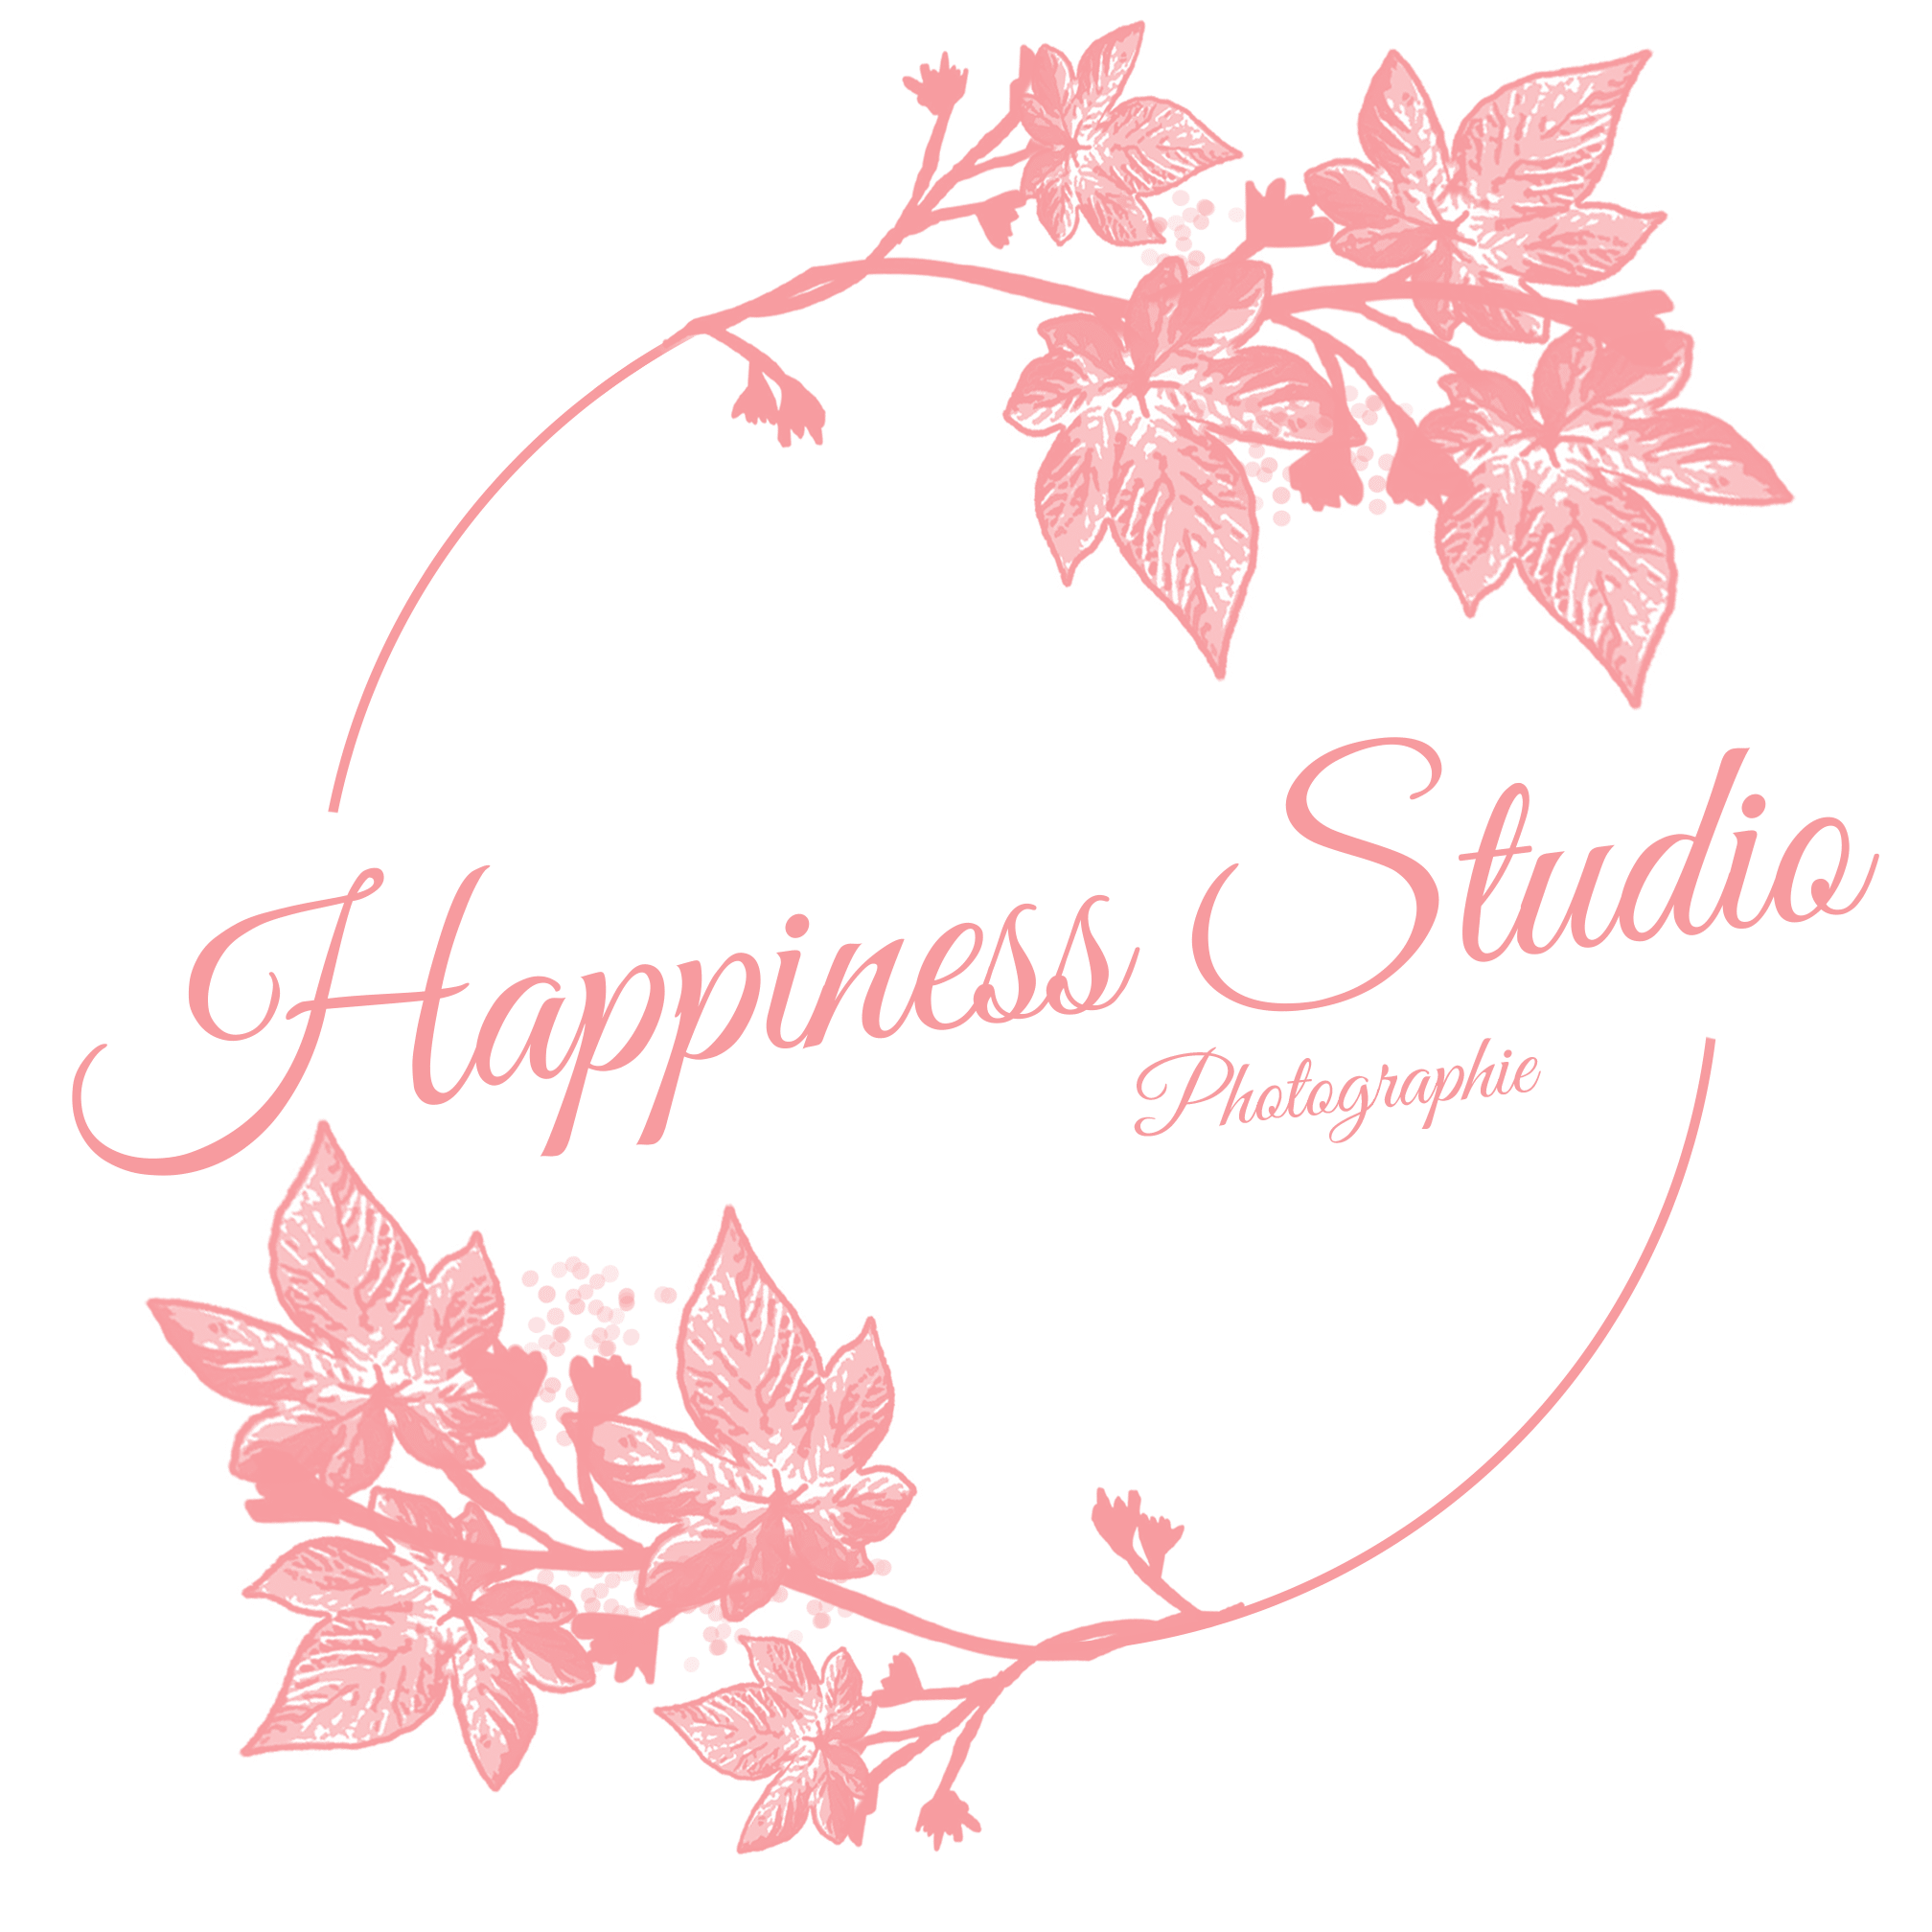 Happiness-studio